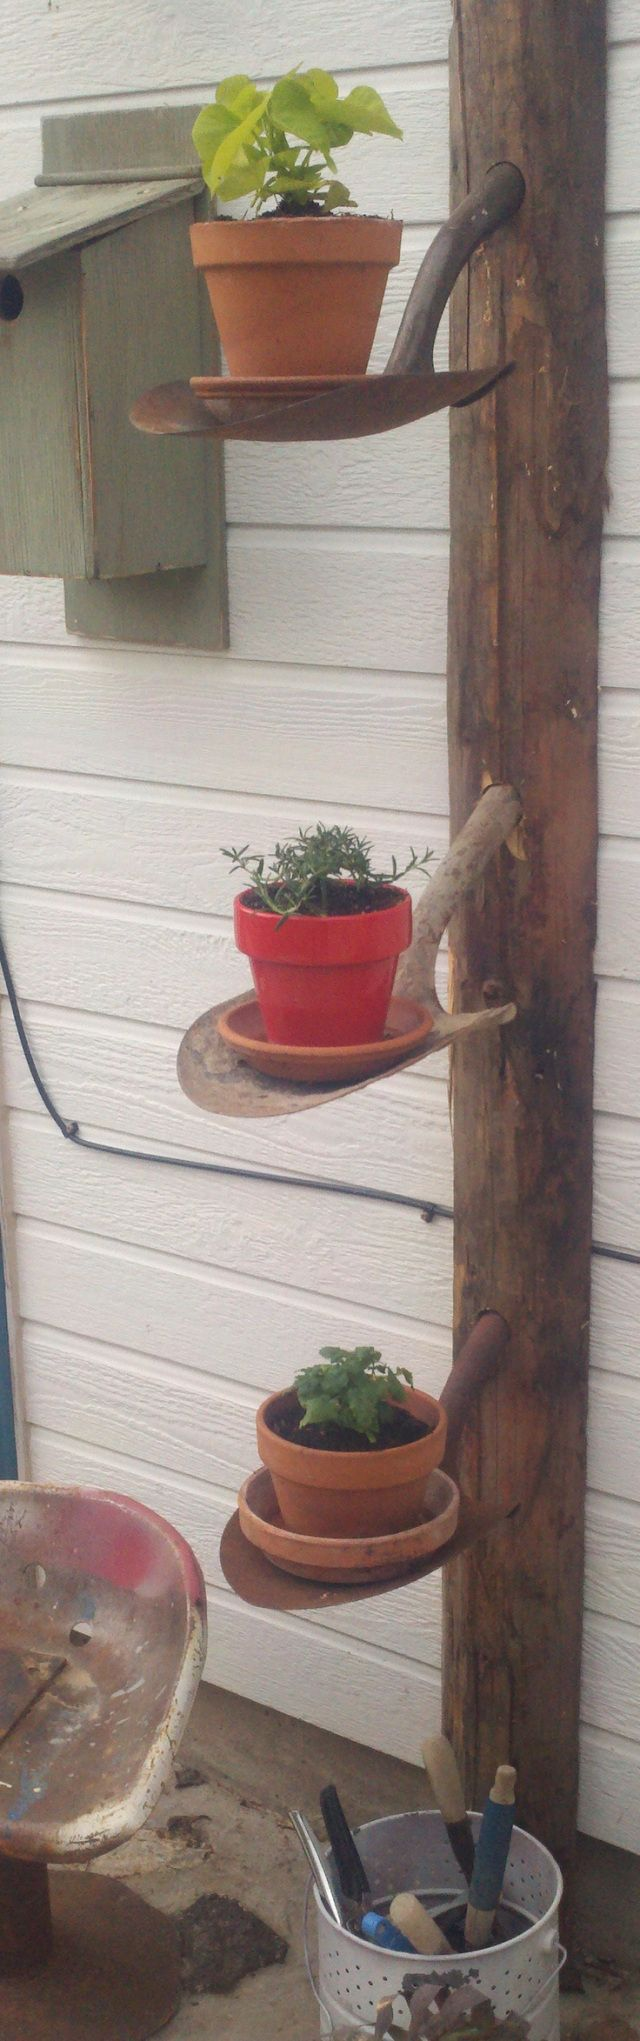 Great plant display idea uses an old shovel (Top Dreamer)